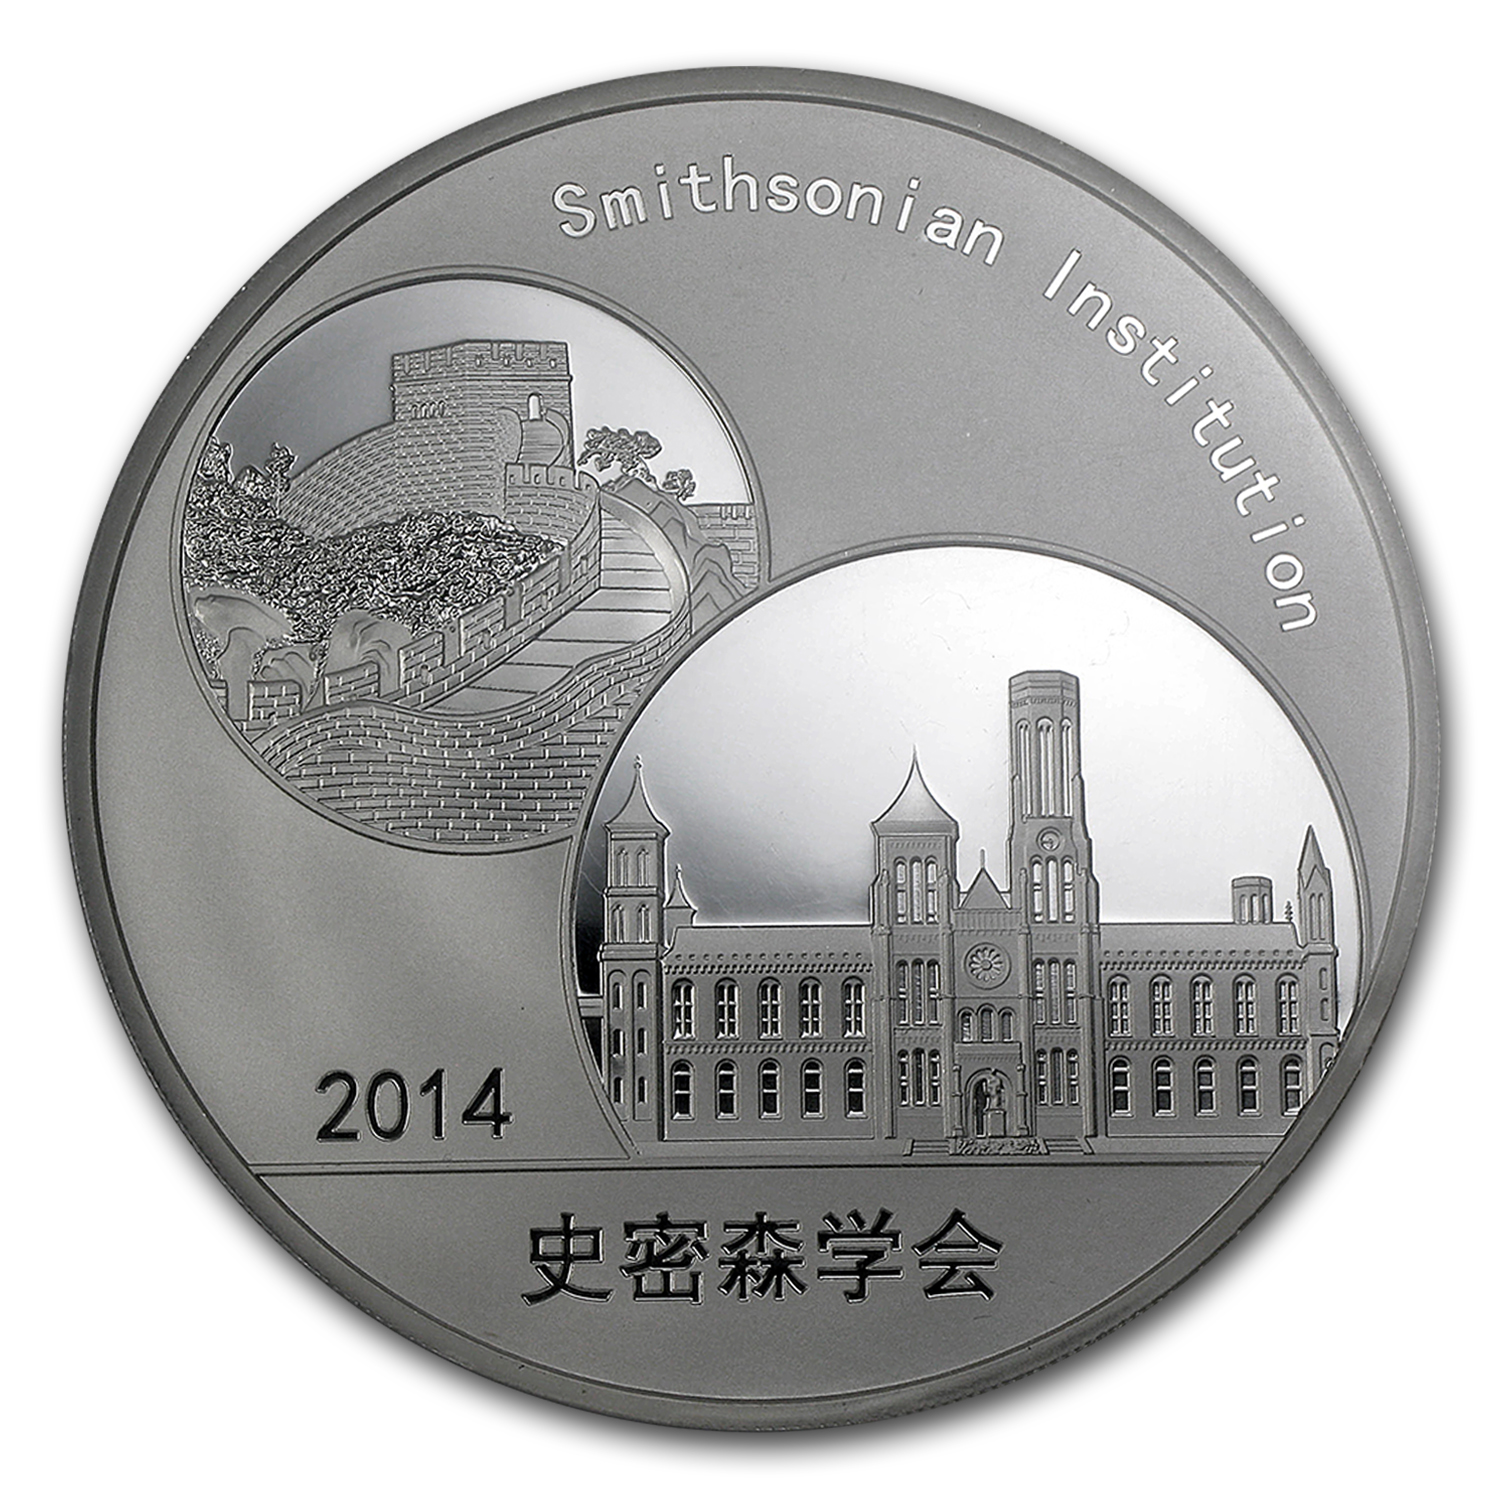 2014 China 5 oz Silver Panda Smithsonian Institution PF-70 NGC